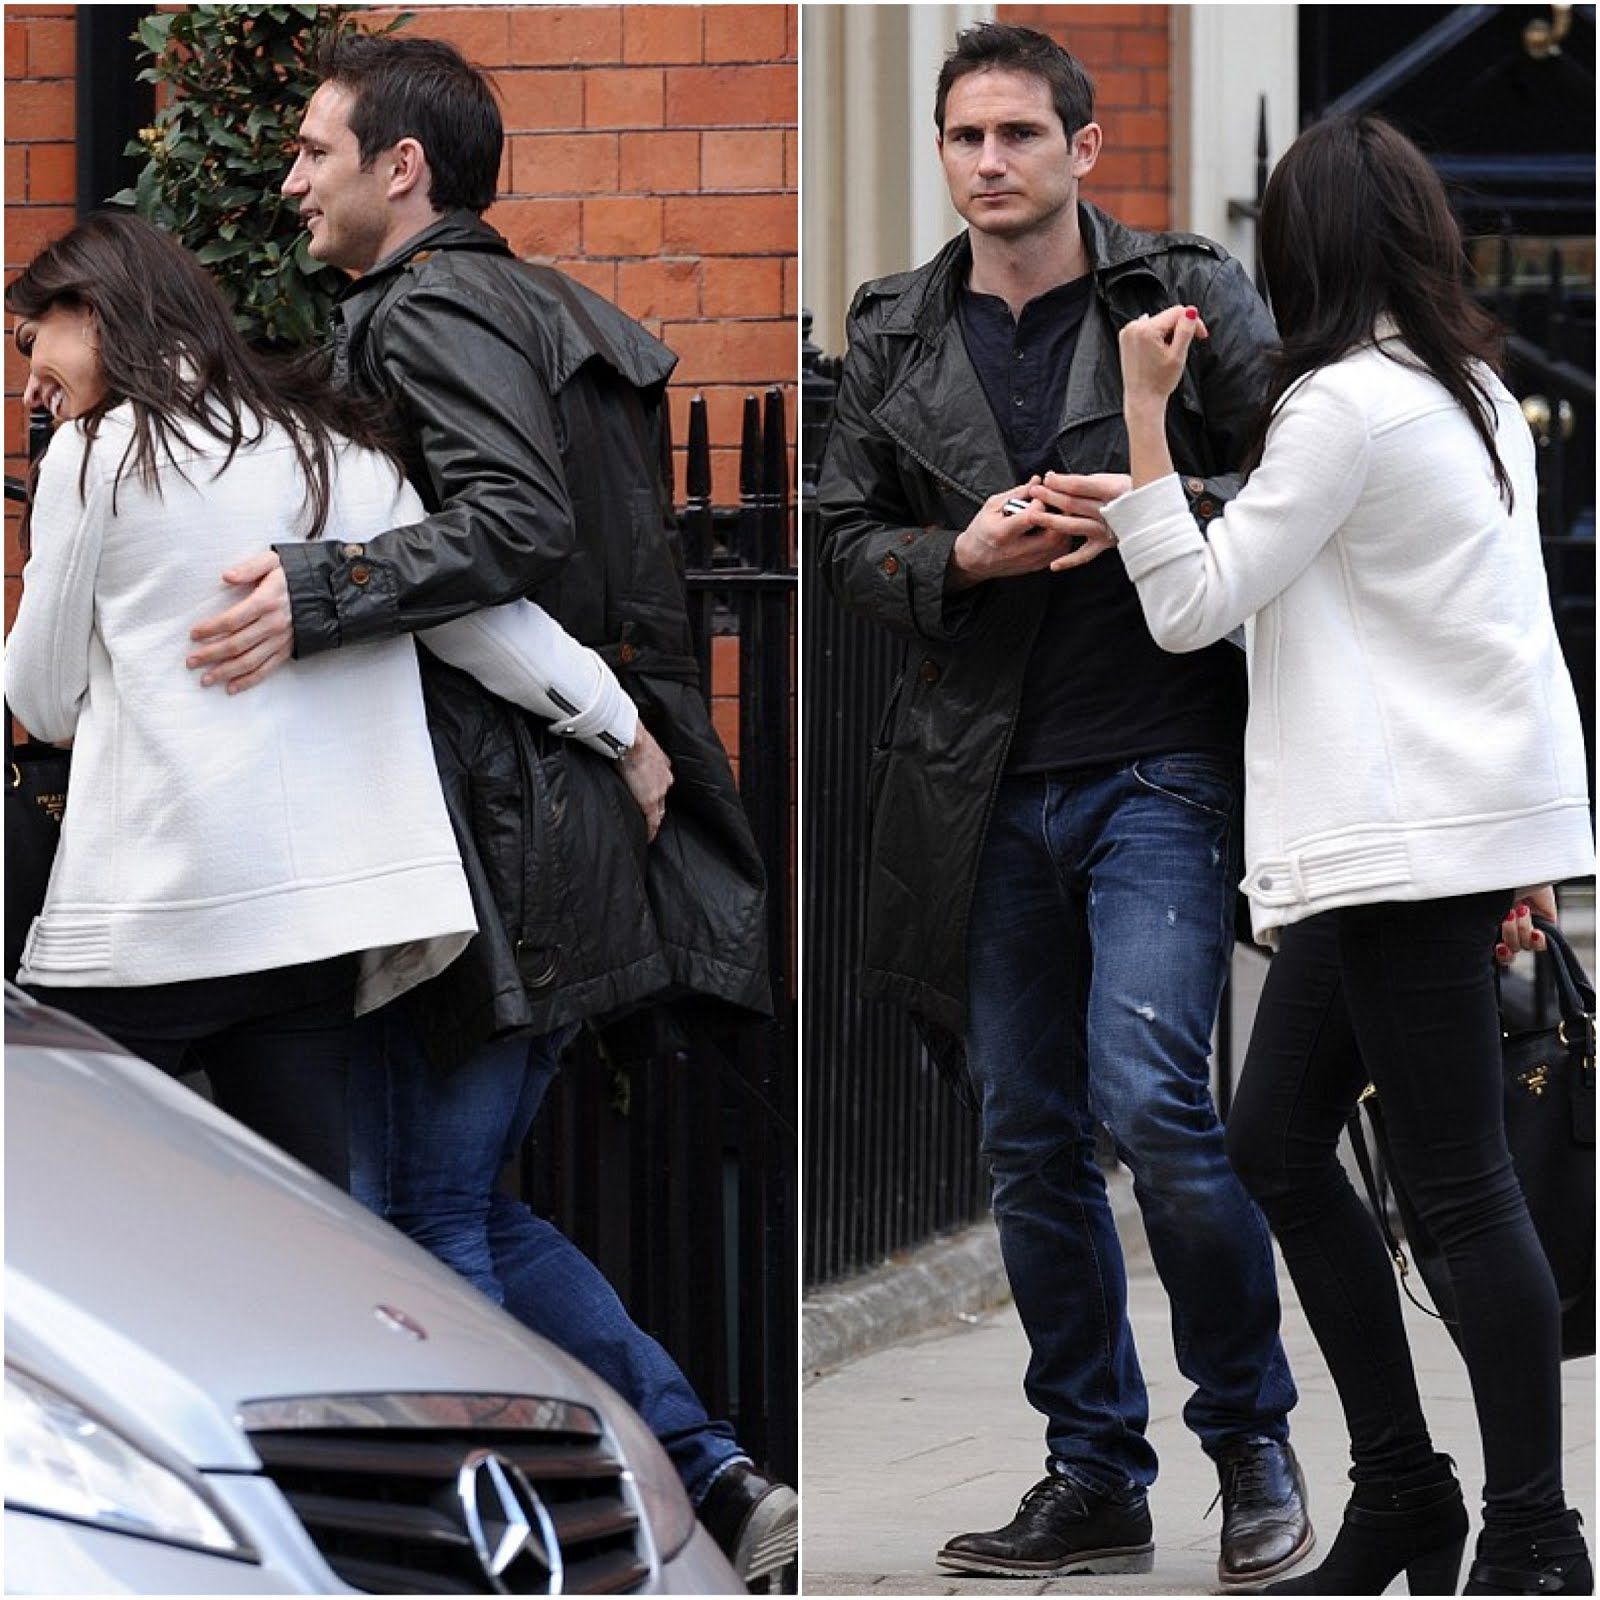 00O00 Menswear Blog: Frank Lampard in Vivienne Westwood MAN resin coated trenchcoat - London street style April 2013